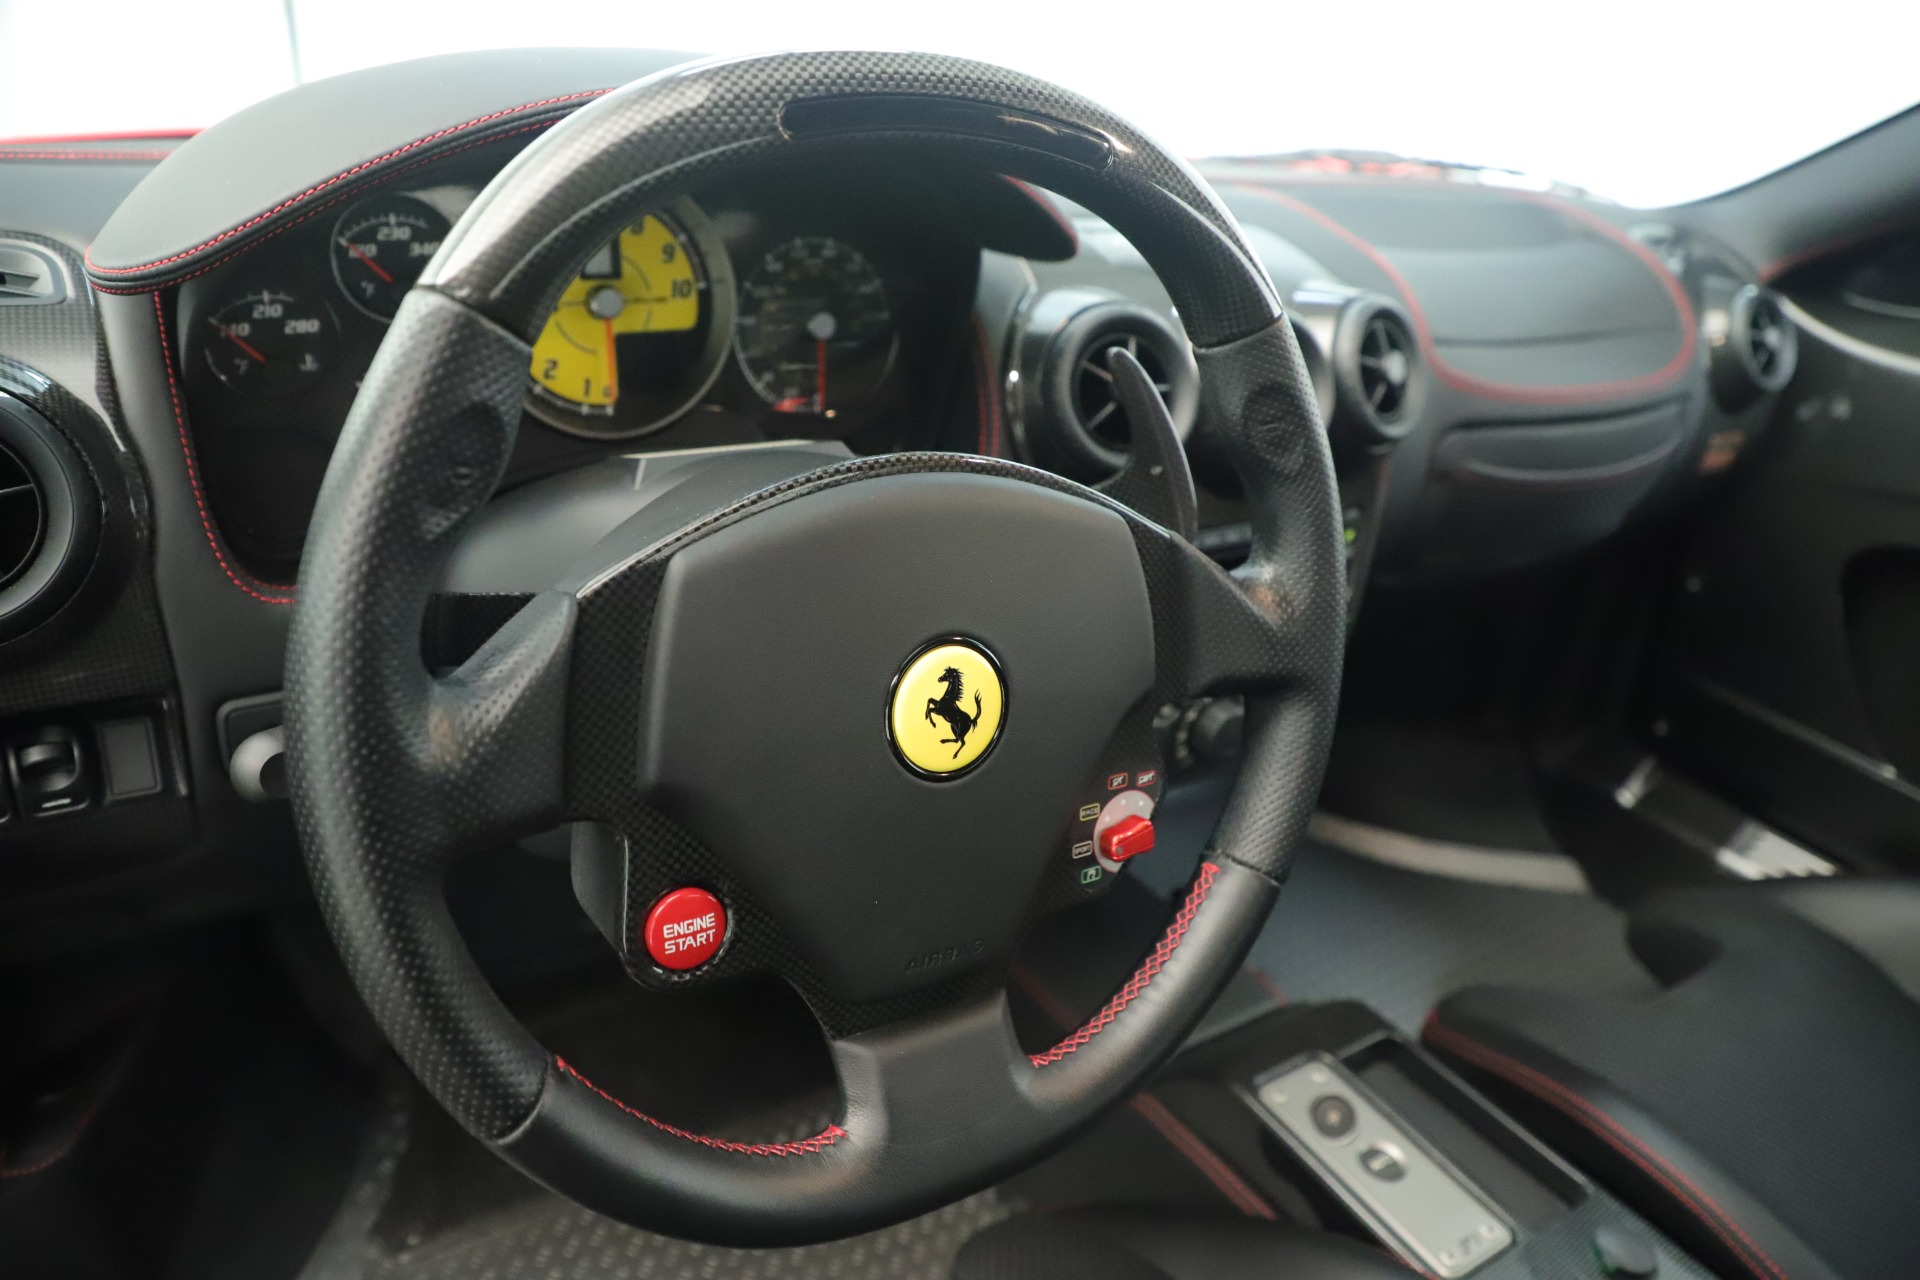 Used 2008 Ferrari F430 Scuderia For Sale In Westport, CT 3381_p21